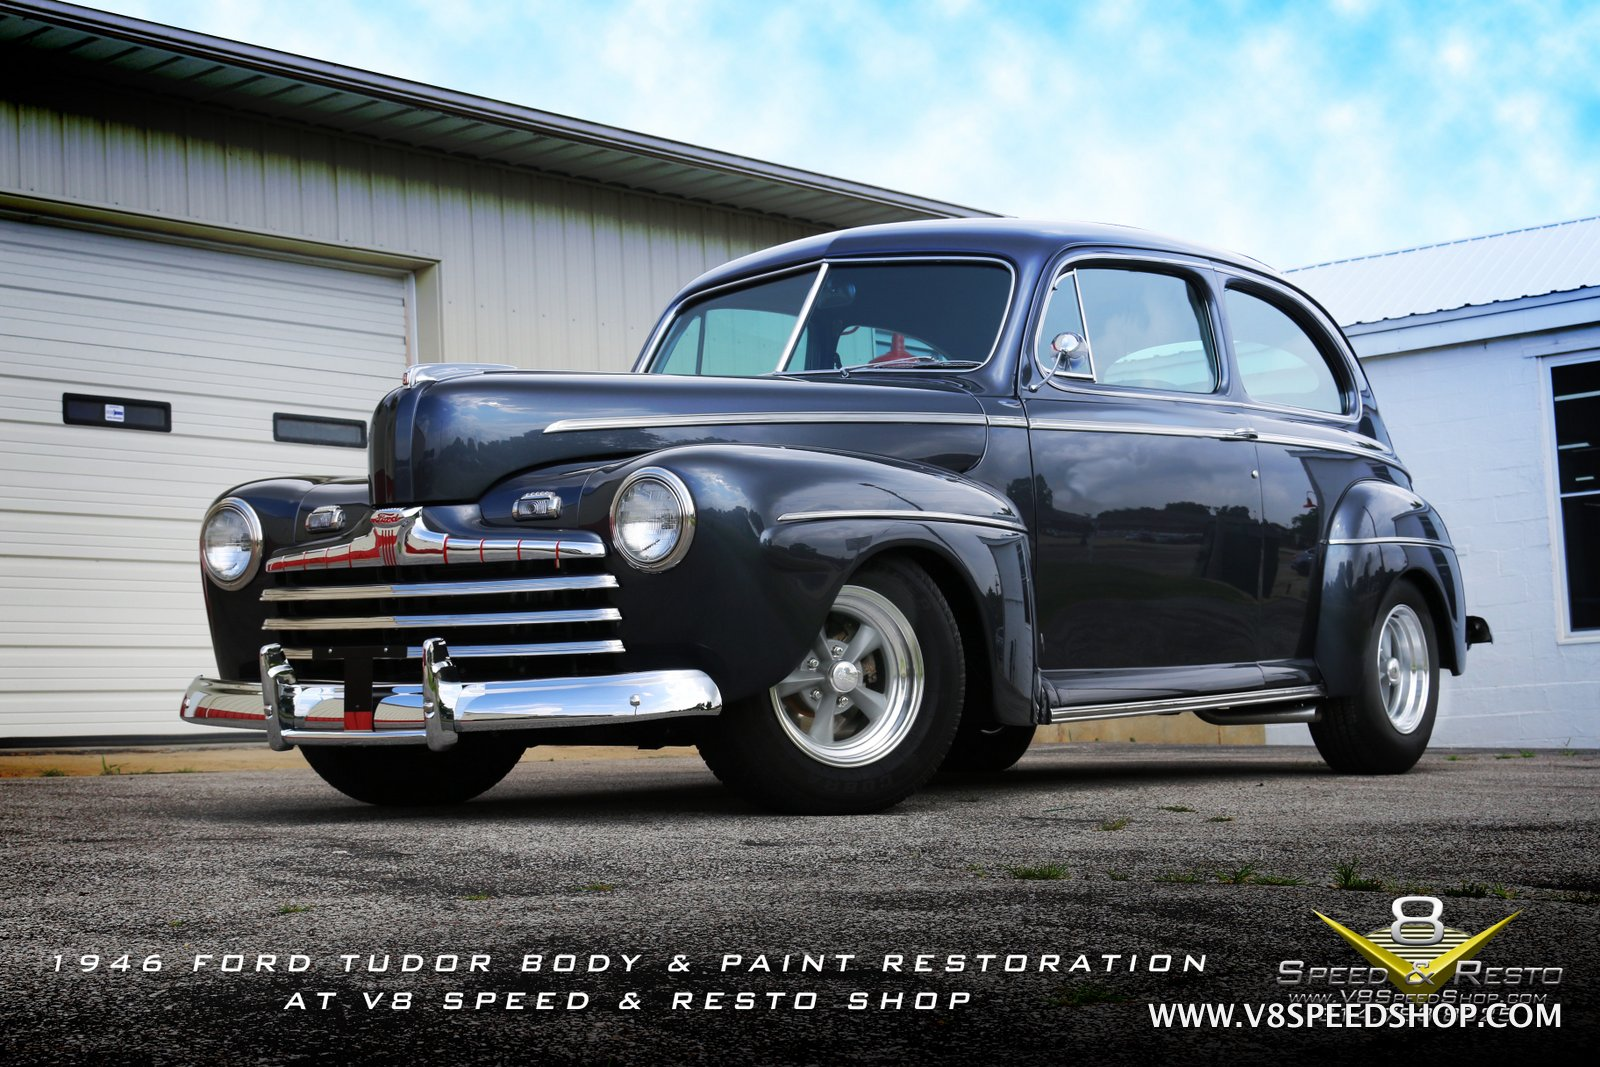 1946 Ford Tudor Restoration Photo Gallery at V8 Speed & Resto Shop